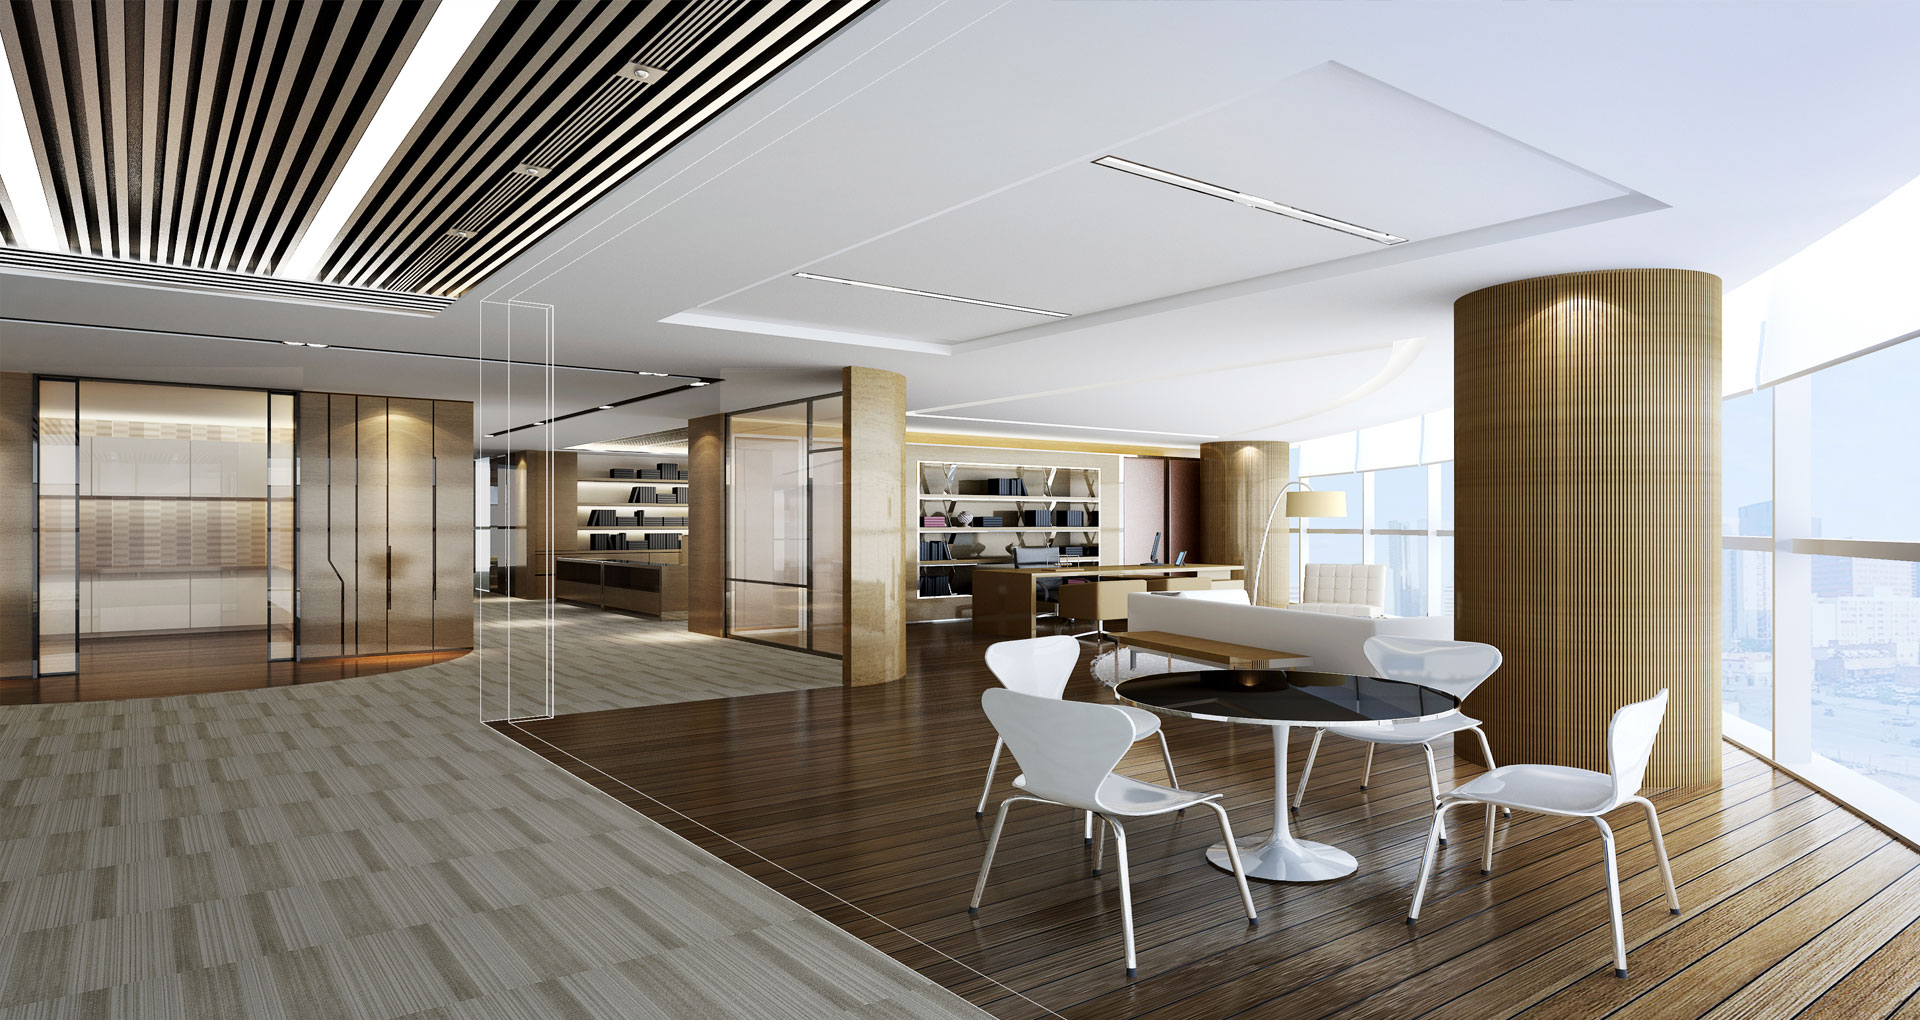 Office interior design inpro concepts design - Office interior design ...